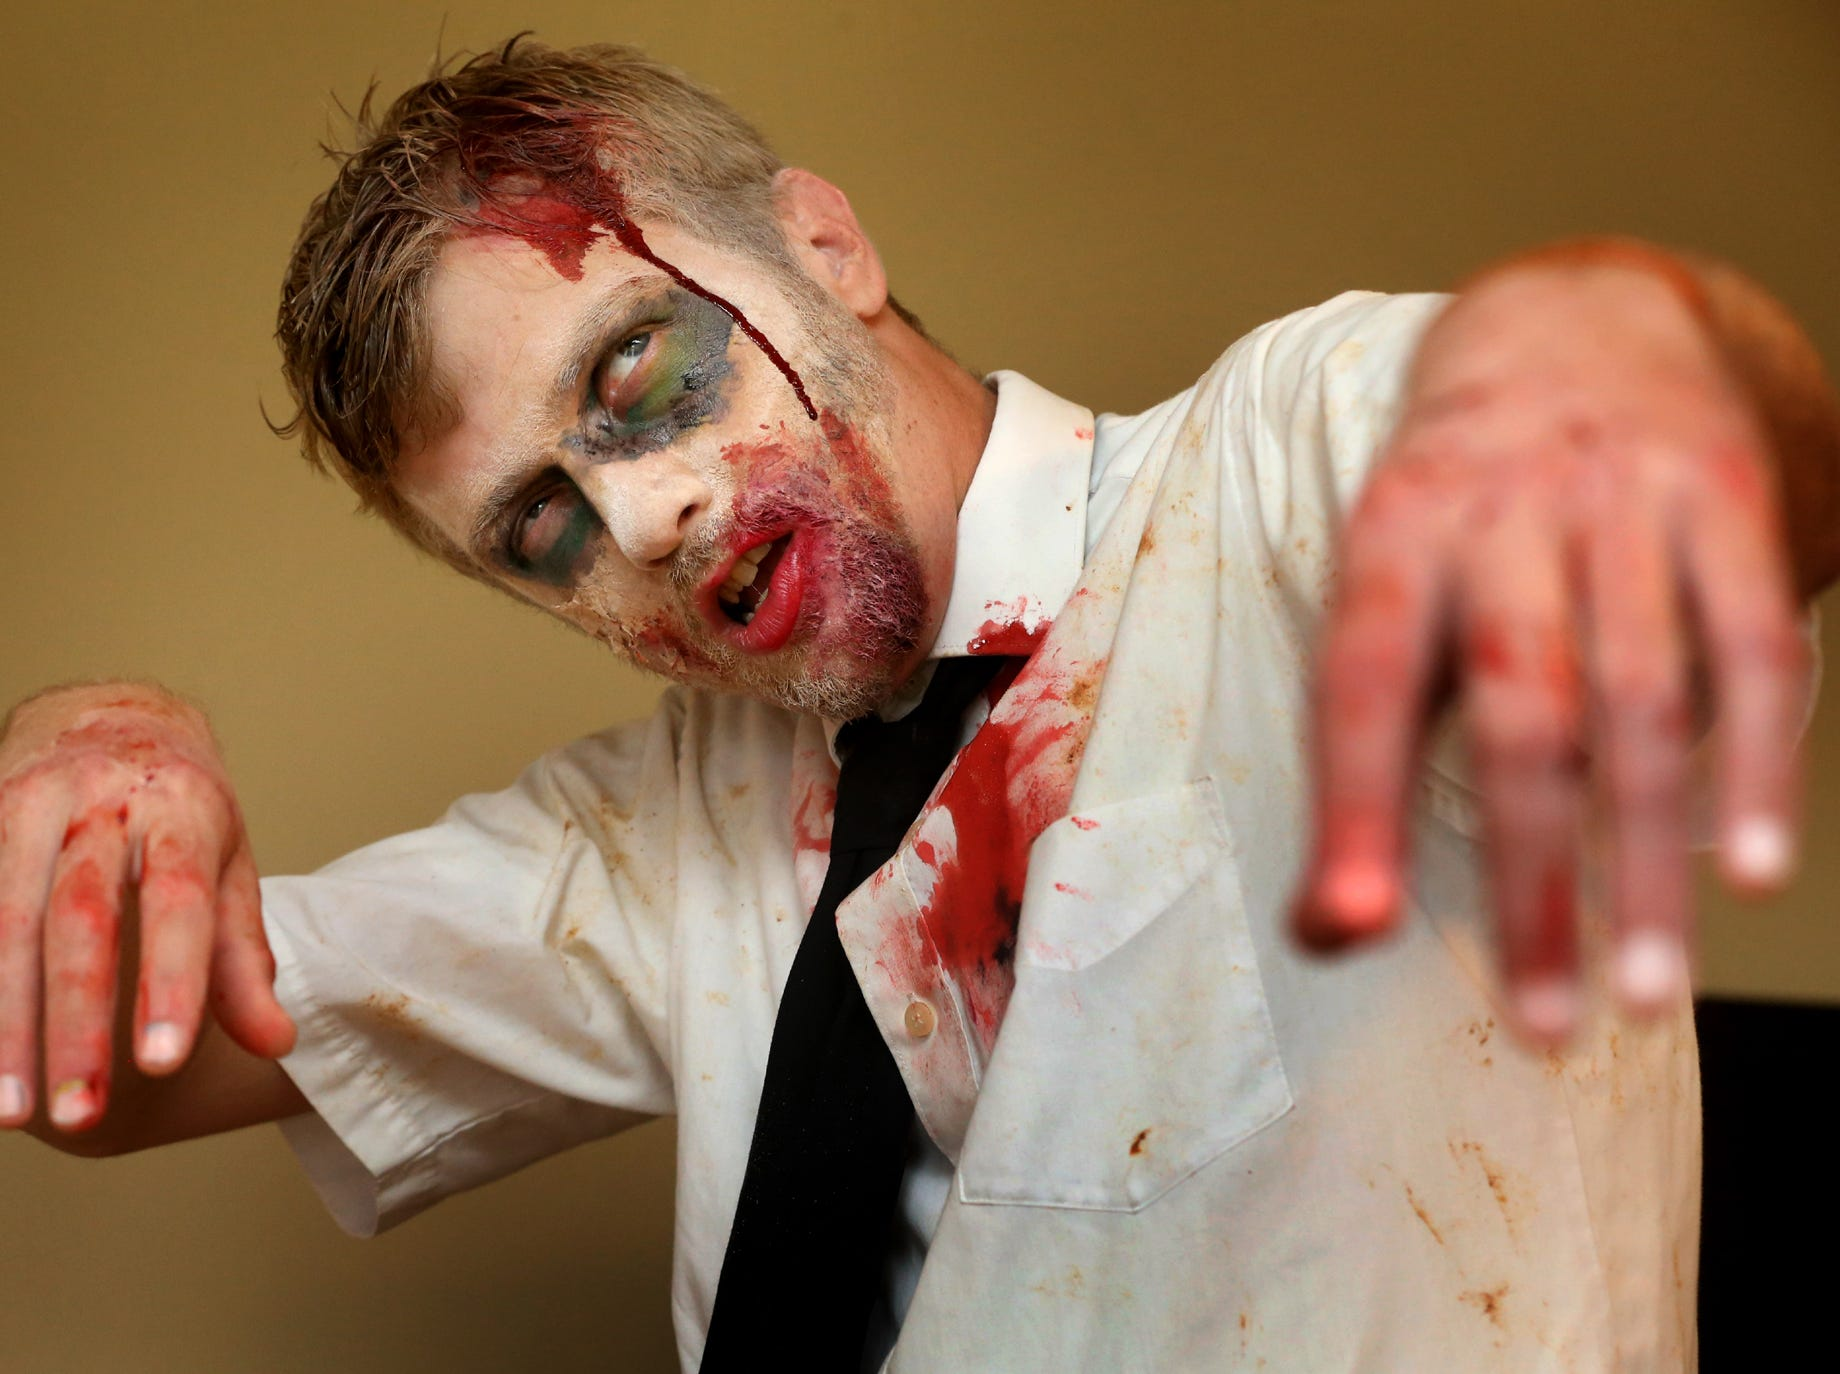 Ryan Frizzell models his zombie look that was created by Sarah Bandy in preparation for the Youth Empowerment through Arts and Humanities Zombie Walk in 2014.